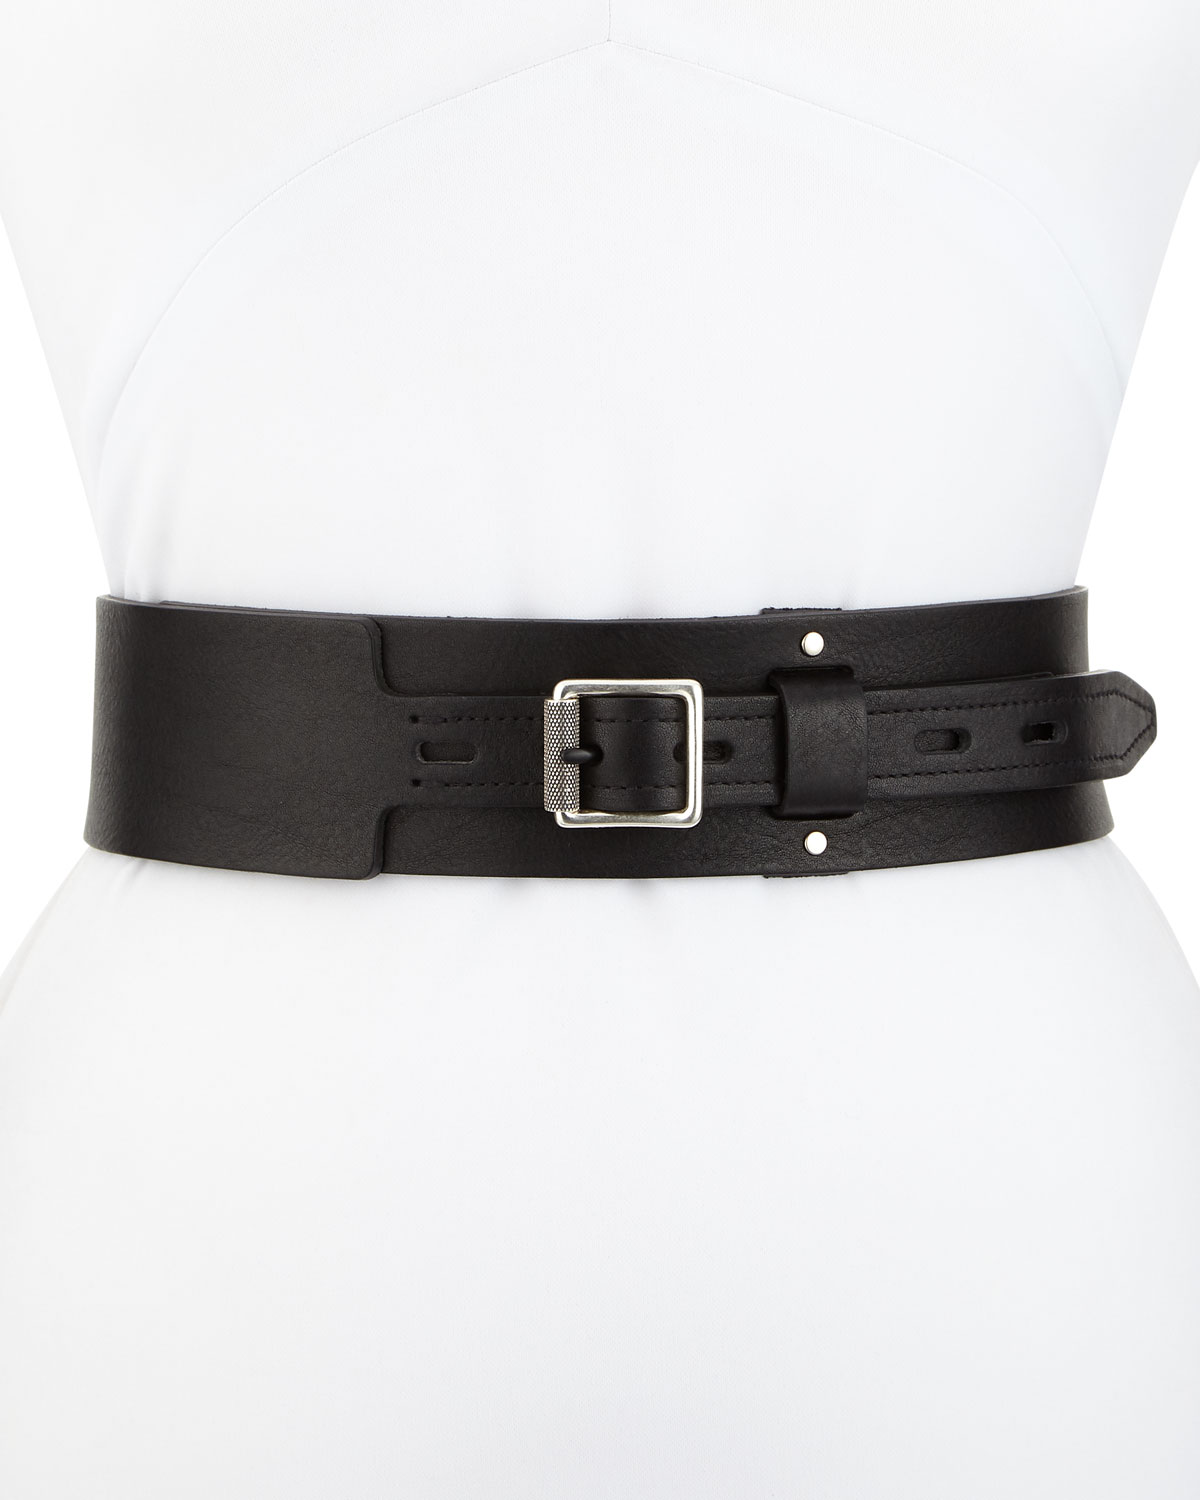 Field Leather Waist Belt - Black Rag & Bone nv5QxThD0